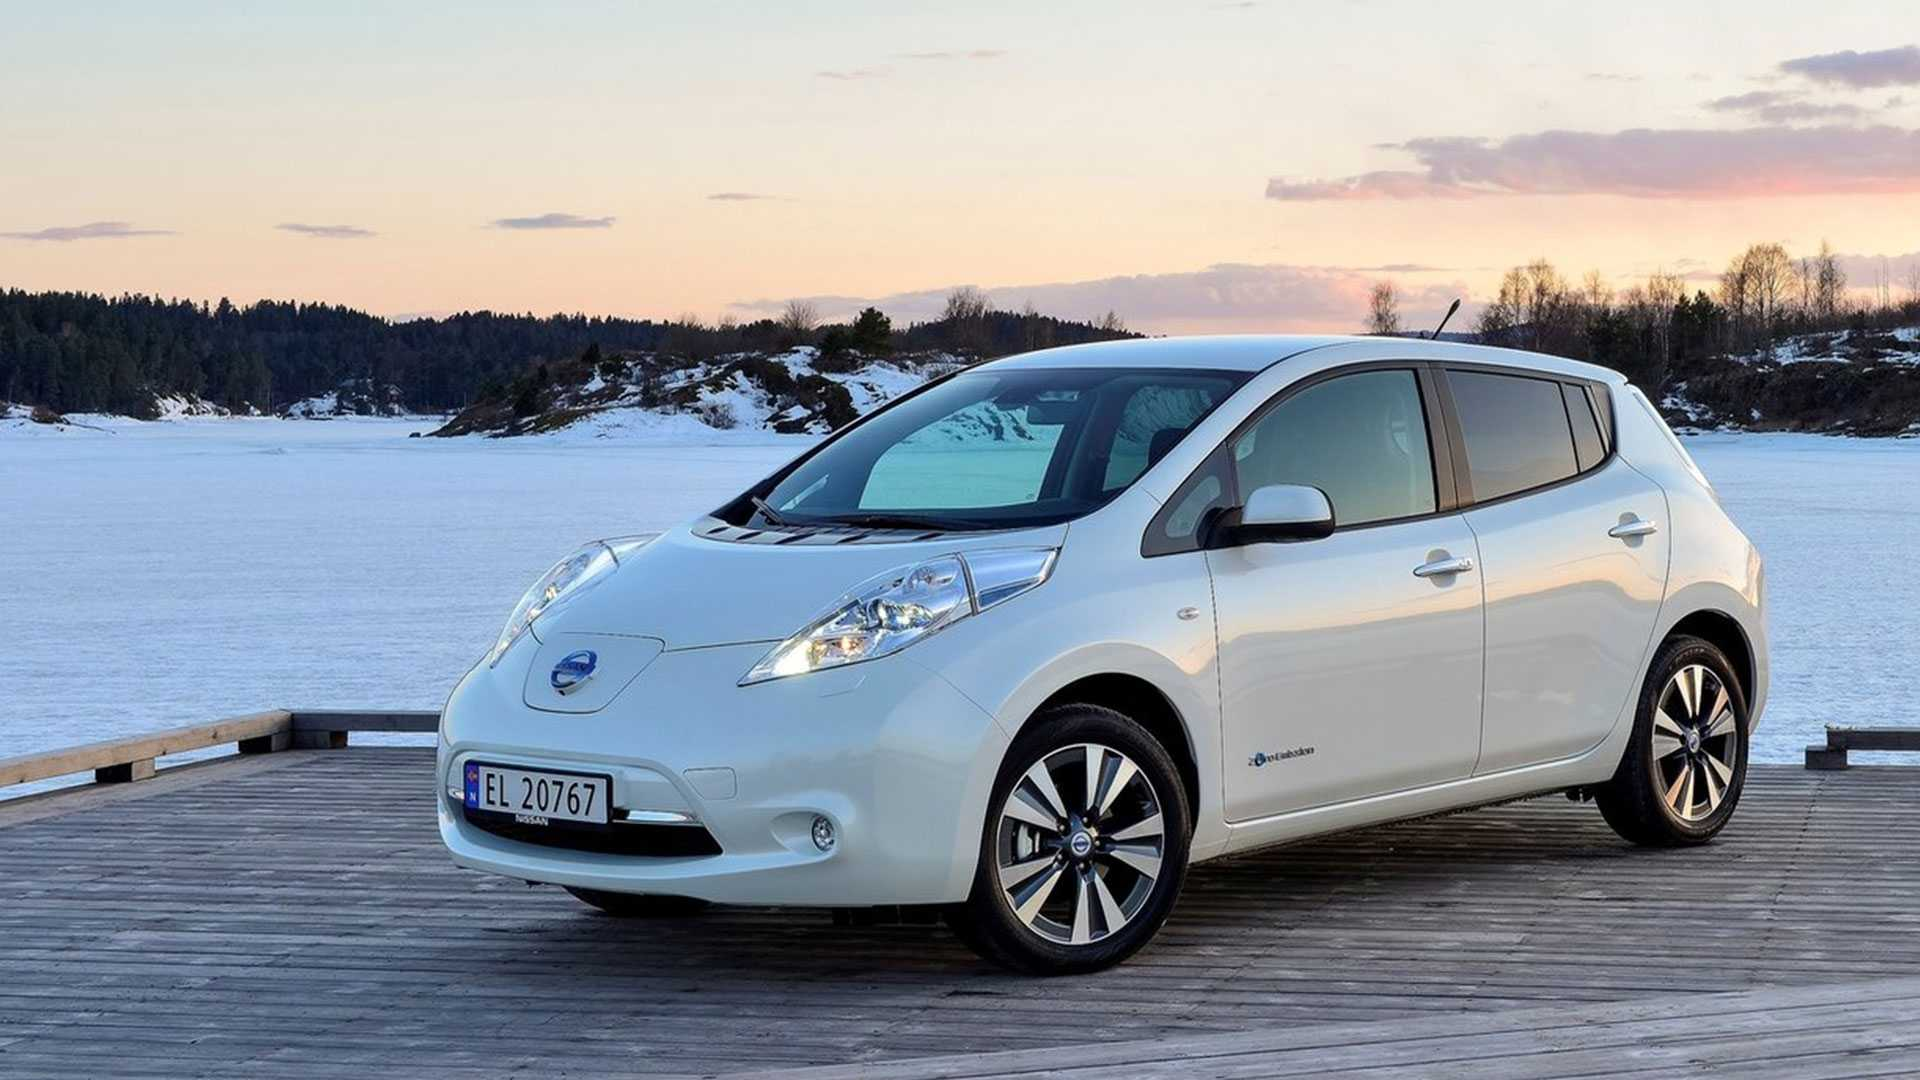 2016 nissan leaf will bring battery range to 110 miles for higher trims. Black Bedroom Furniture Sets. Home Design Ideas